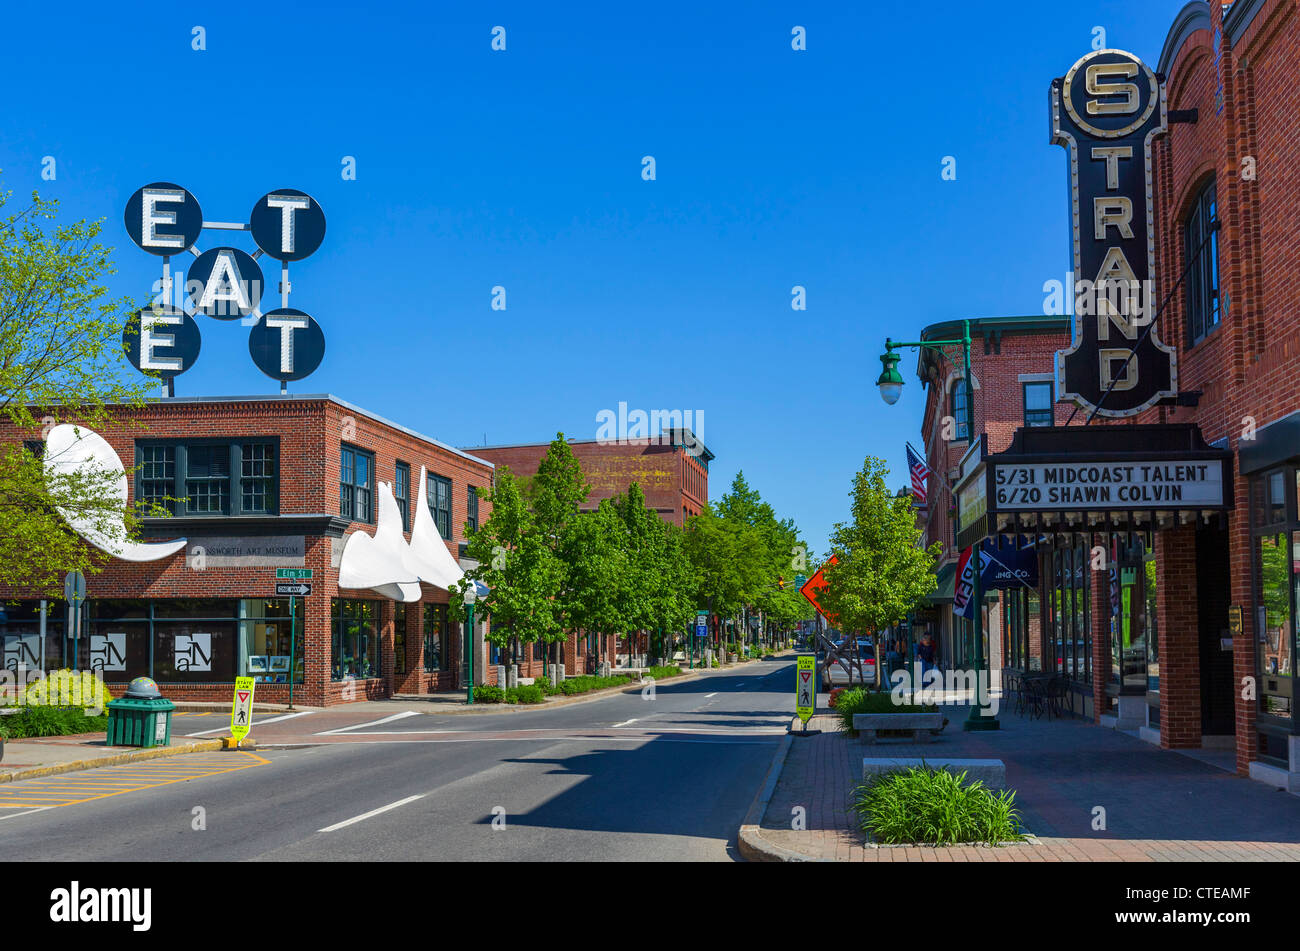 Strand Theater and shops on Main Street, Rockland, Knox County, Maine, USA - Stock Image